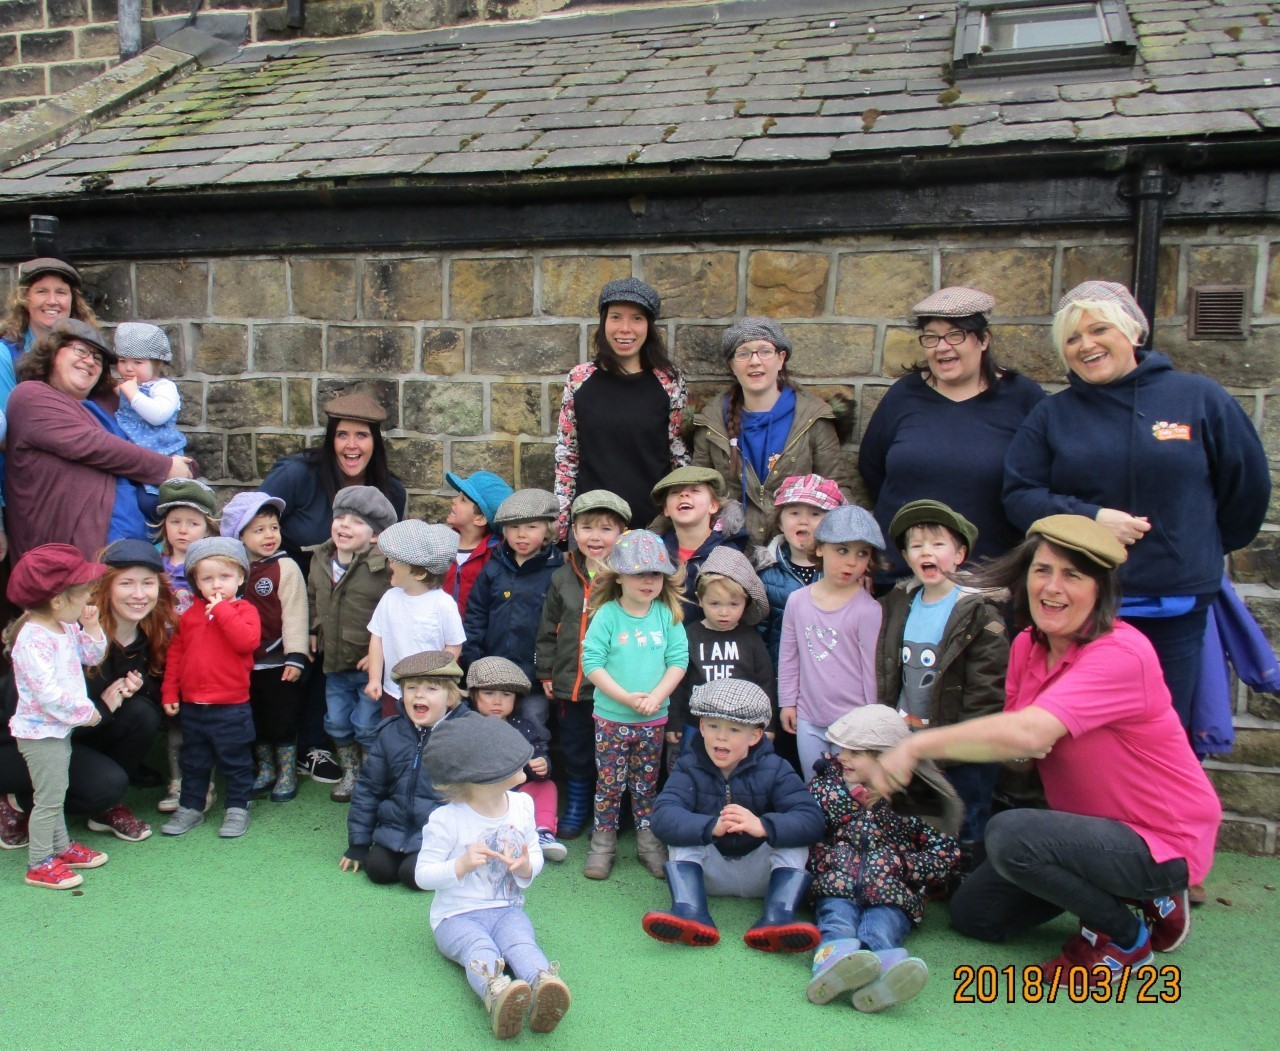 Children and staff at Jolly Tots Pre School Nursery, Burley-in-Wharfedale, enoying 'Flat Cap Friday'